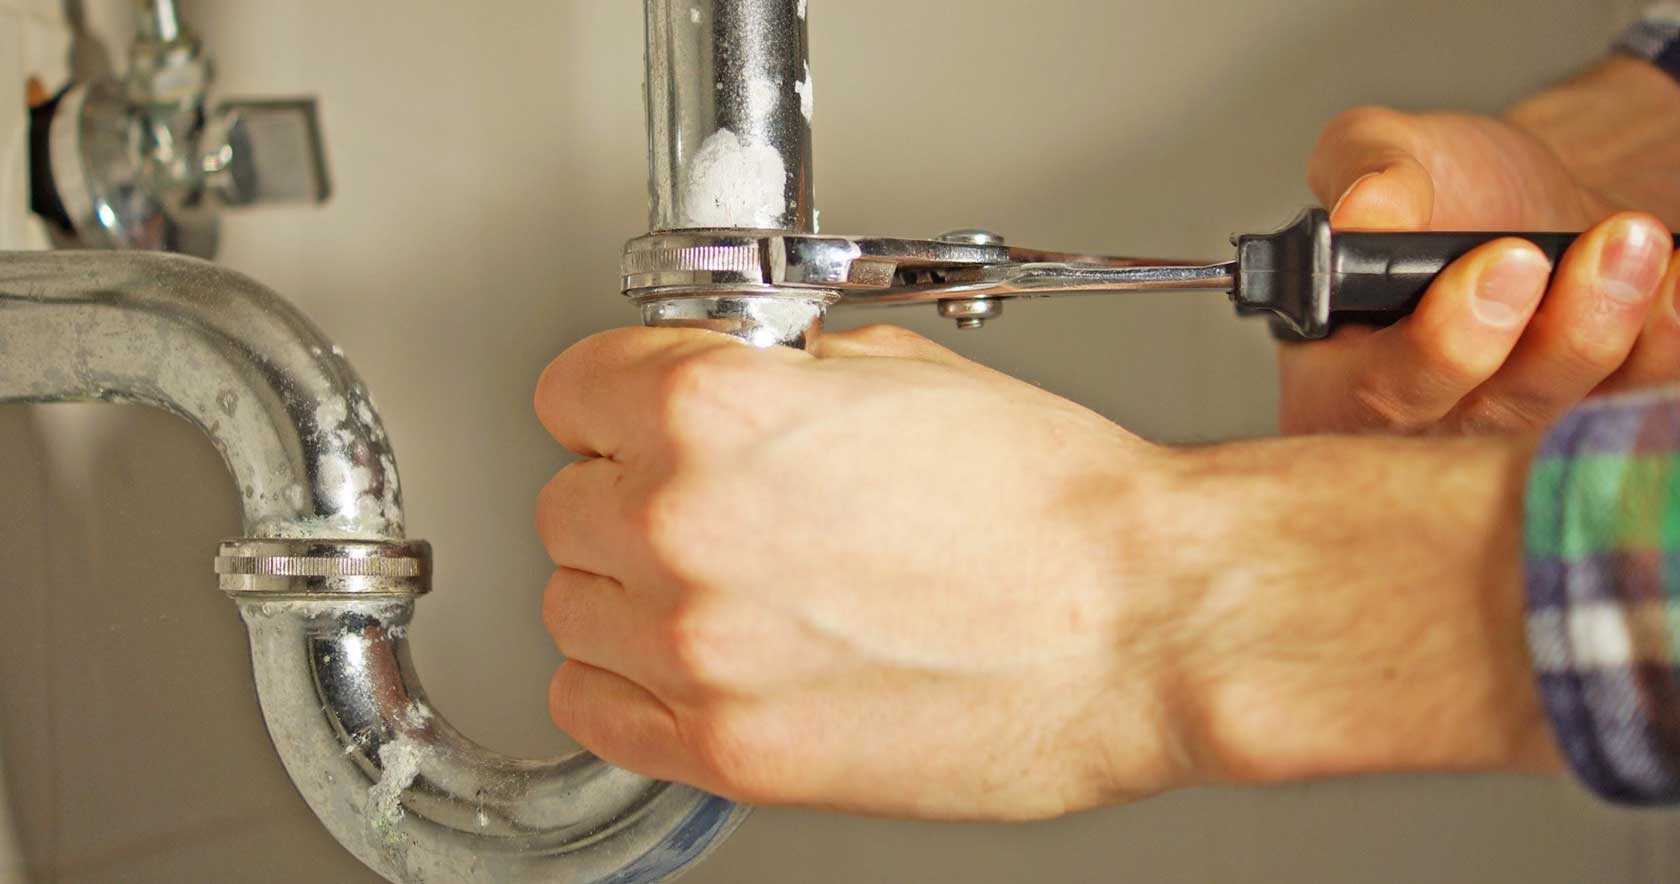 5 Plumbing Issues That Can Affect Your Family's Health